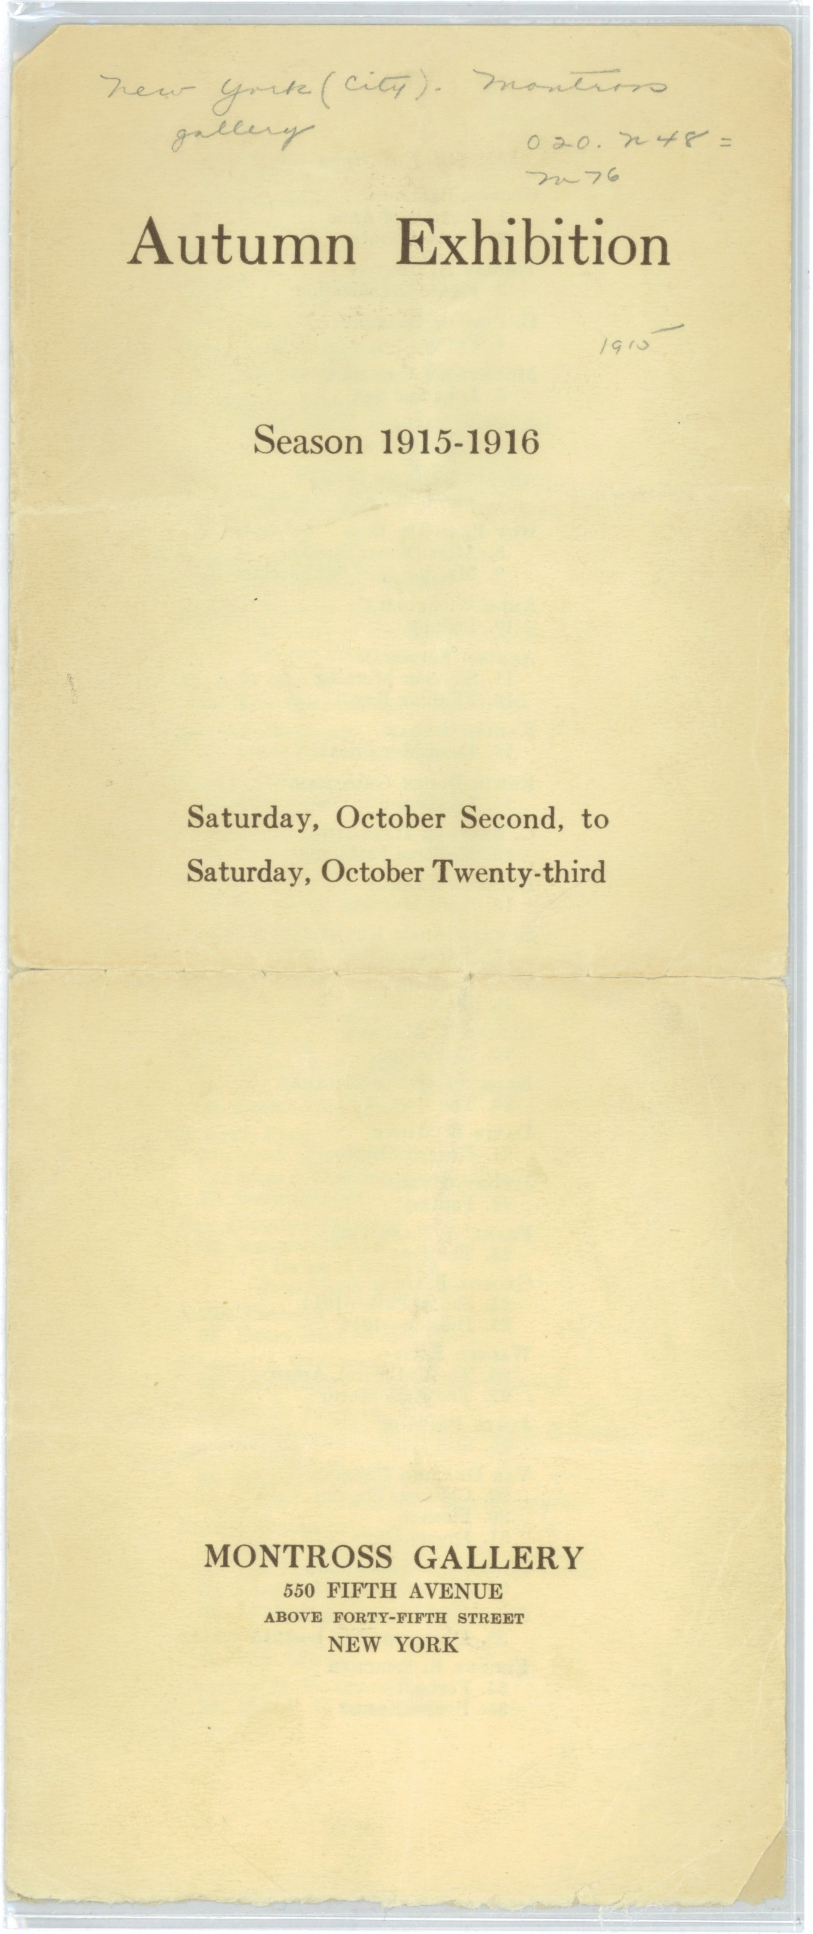 Autumn Exhibition [Catalogue], Season 1915-1916, New York: Montross Gallery, October 2-23, 1915.